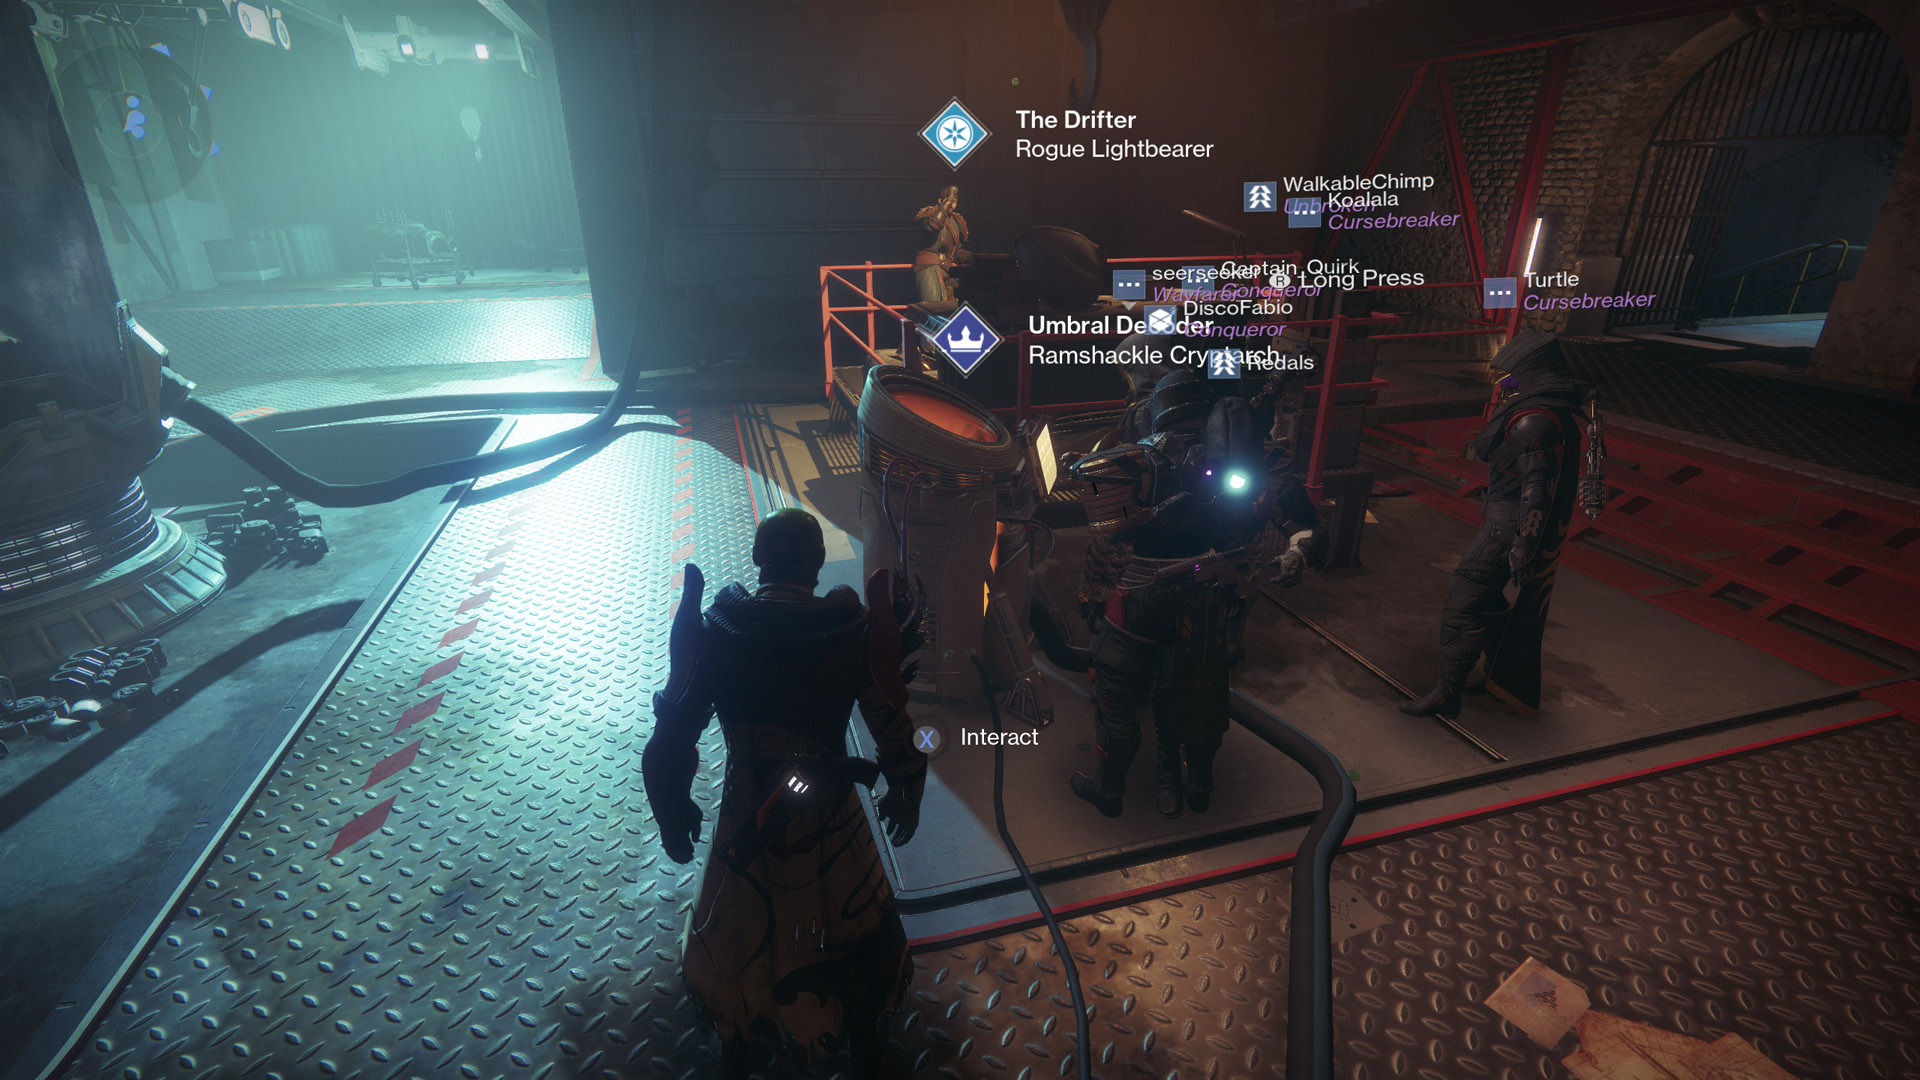 destiny 2 season of arrivals in the face of darkness umbral decryption